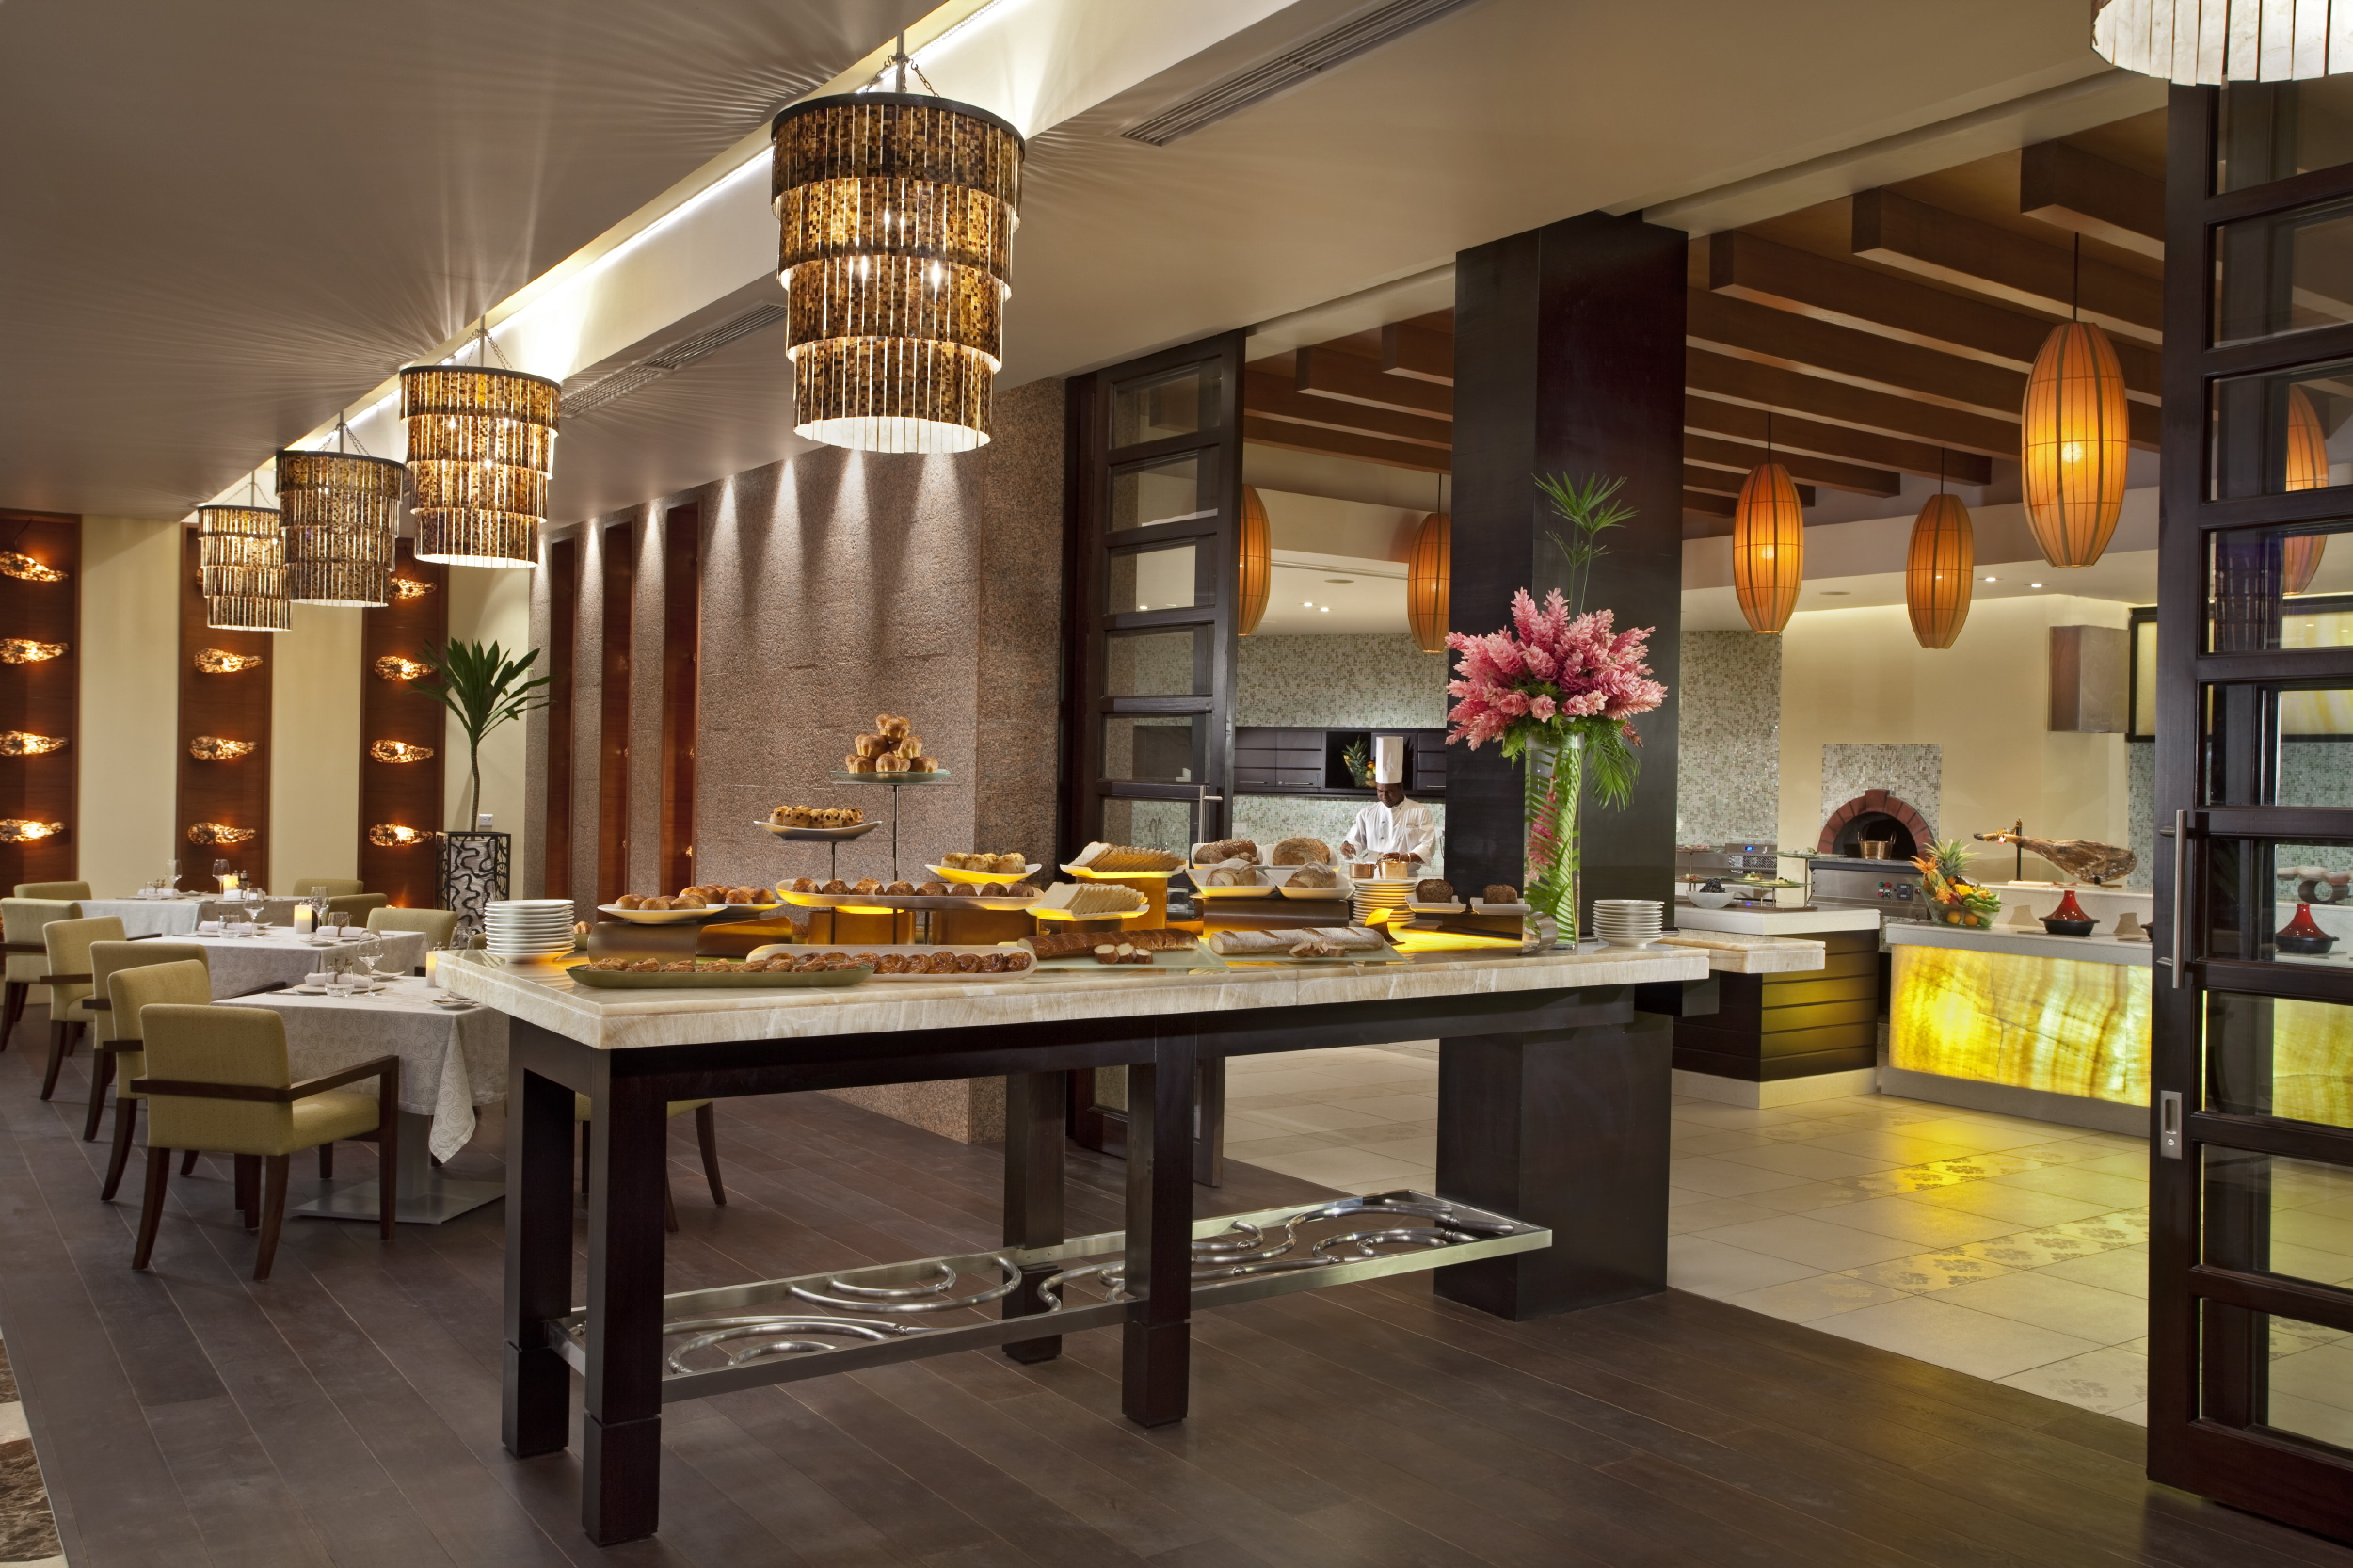 Buffet Cuisine Design Tabletop Concepts For Raffles Seychelles Resort